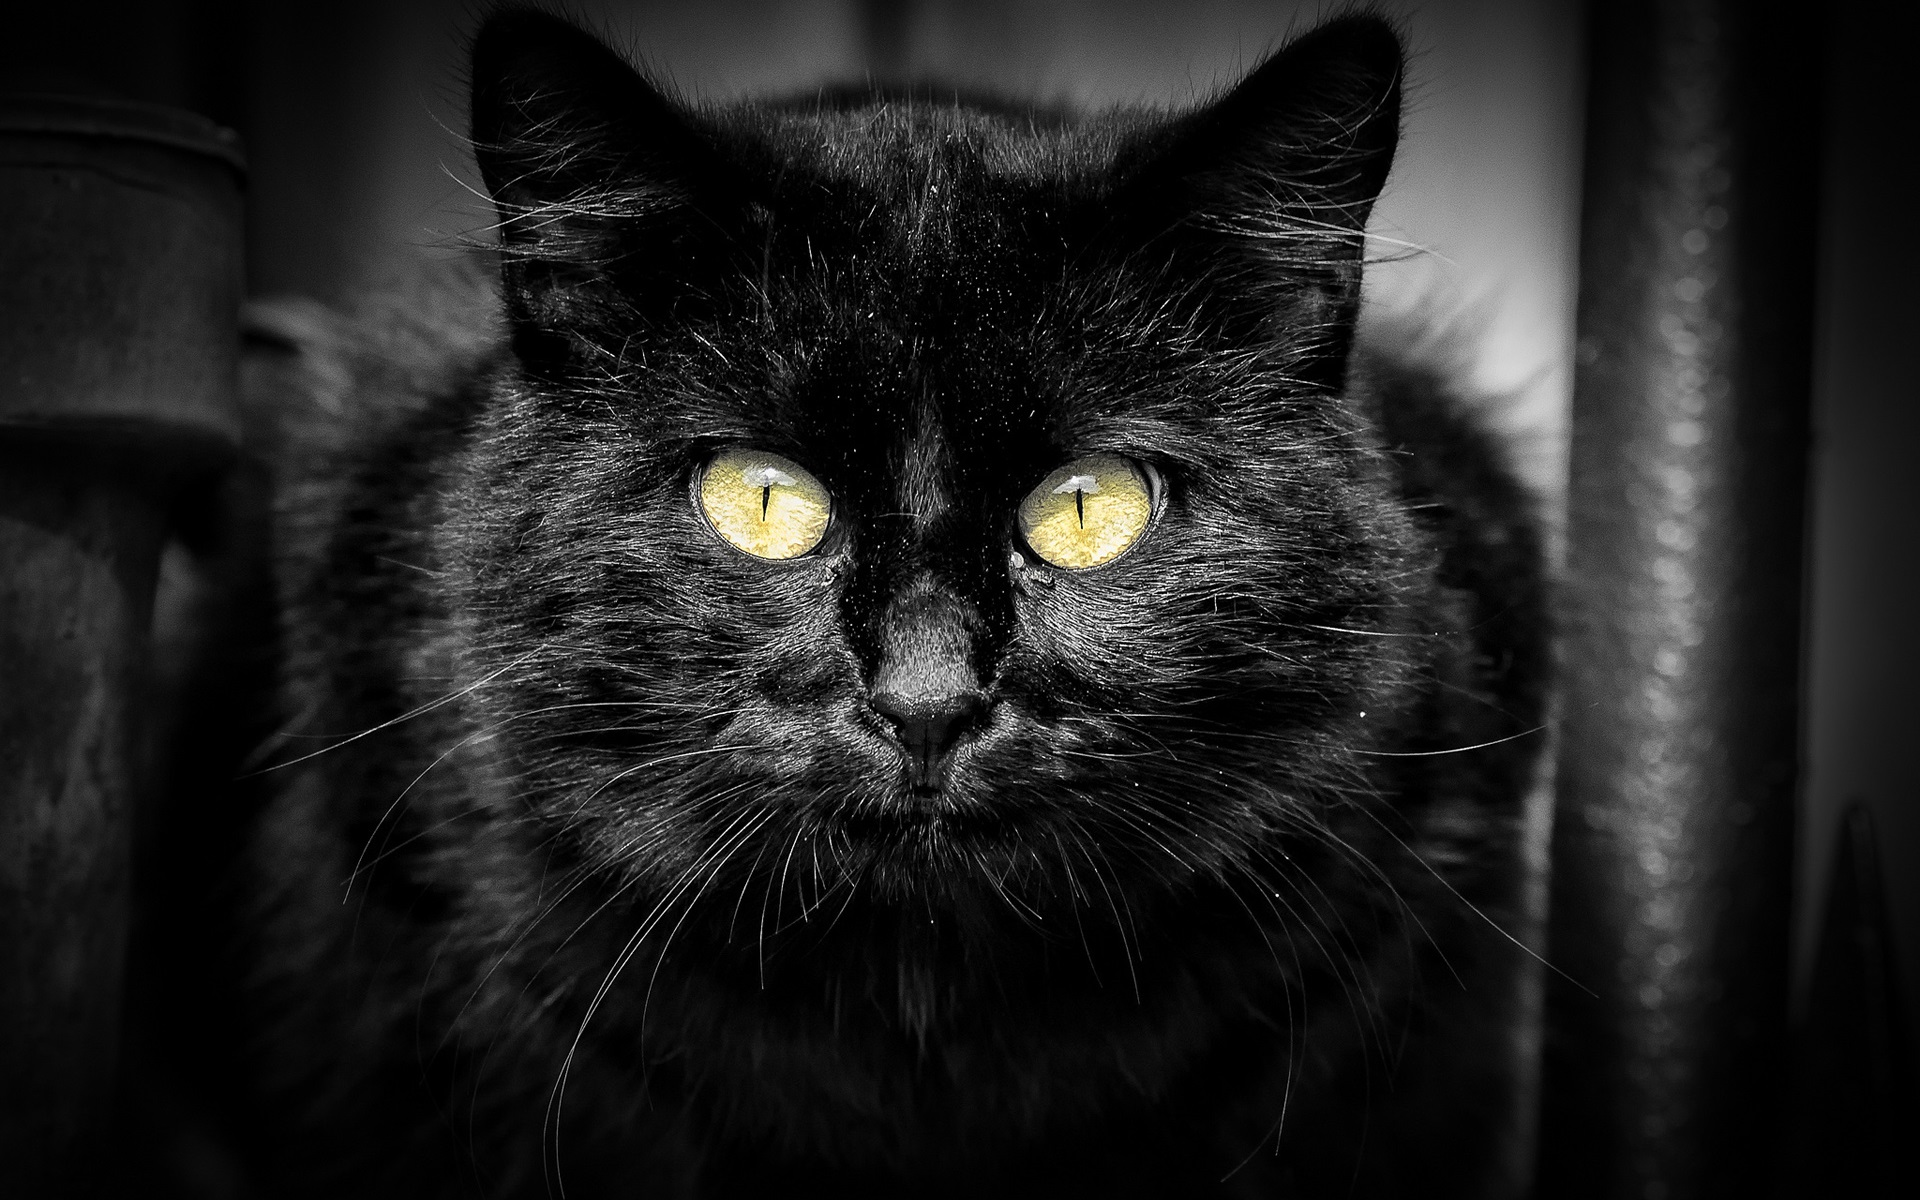 Wallpaper Black Cat Yellow Eyes Black Background 1920x1200 Hd Picture Image